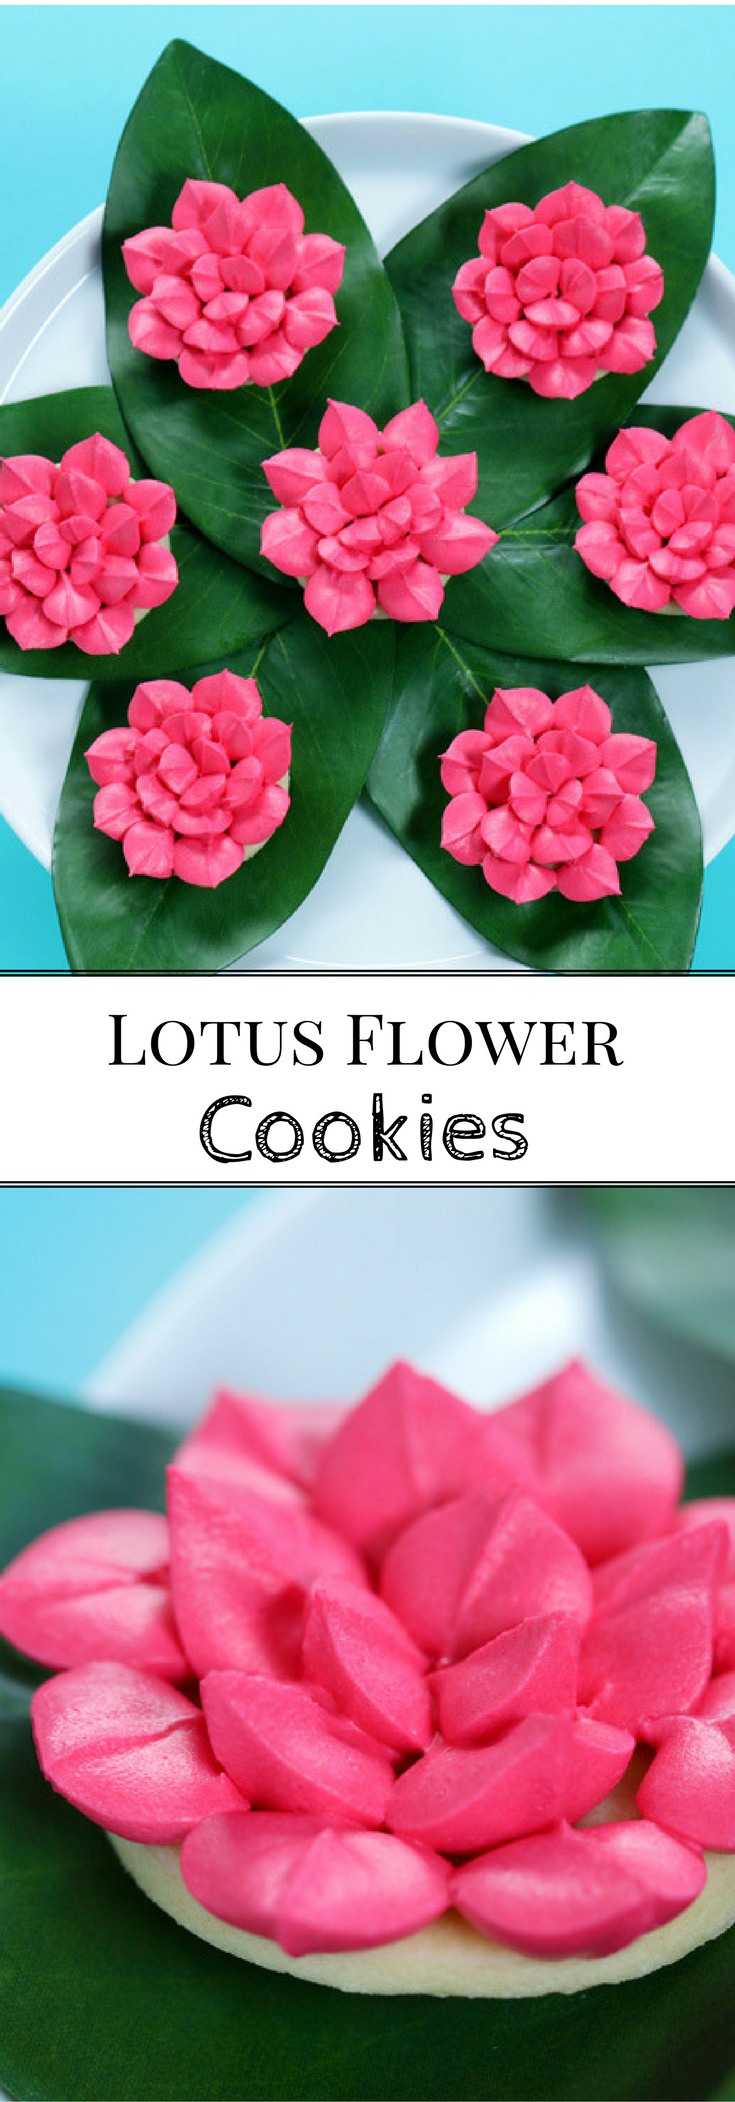 Vegan Percy Jackson Lotus Flower Cookies Geek Food Flower